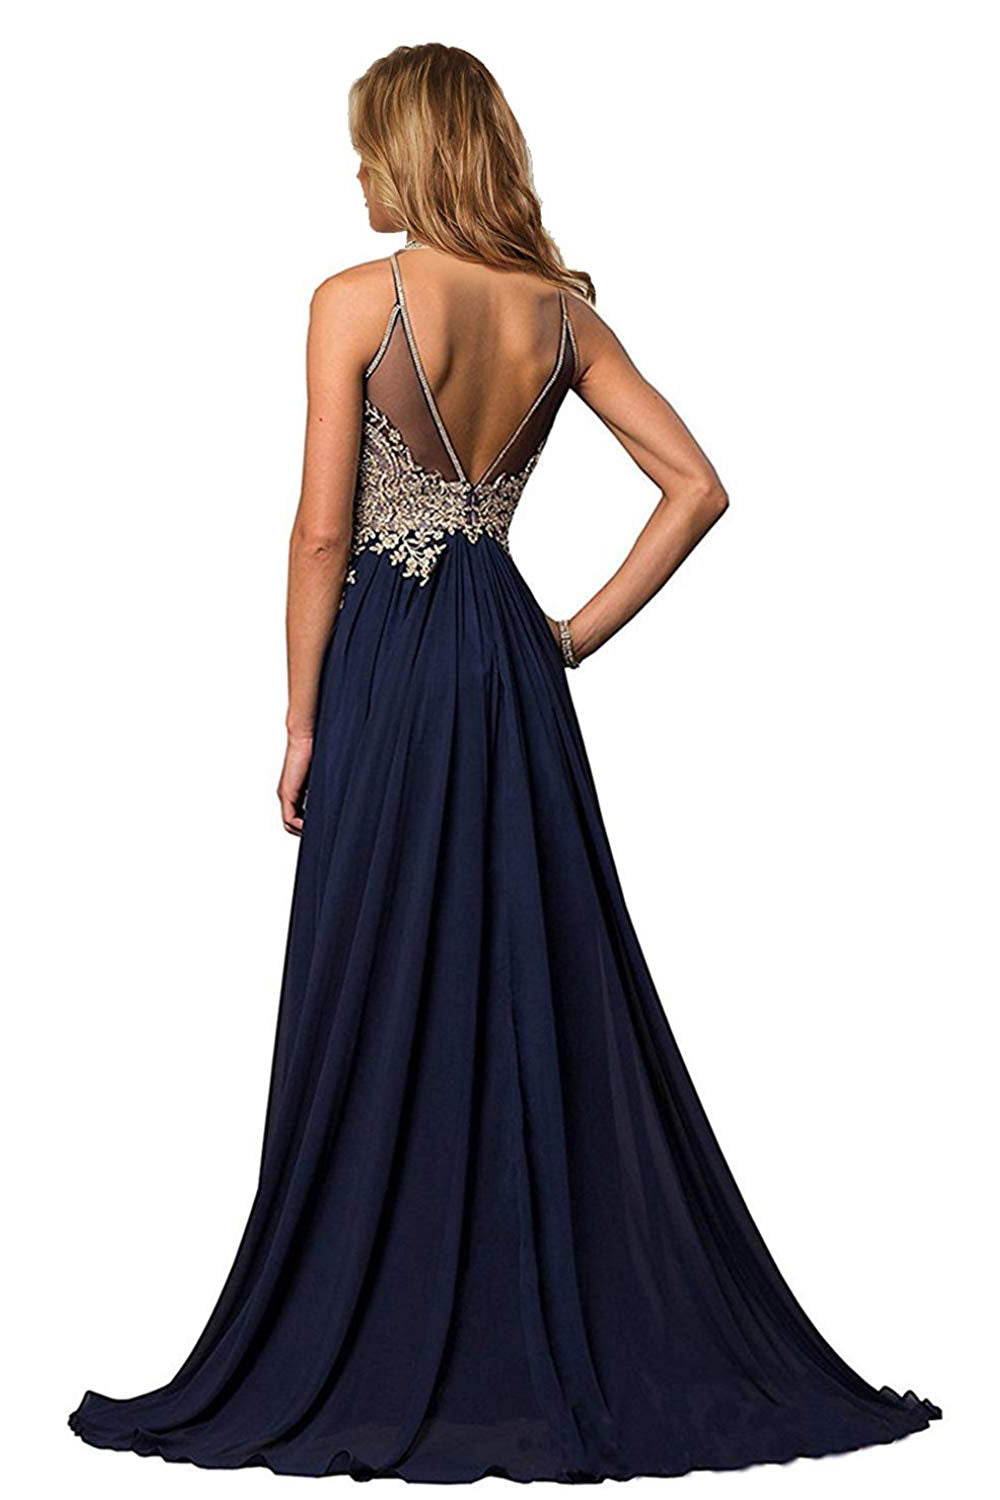 Halter Gold Applique Prom Dresses Evening Formal Gowns – Angrila